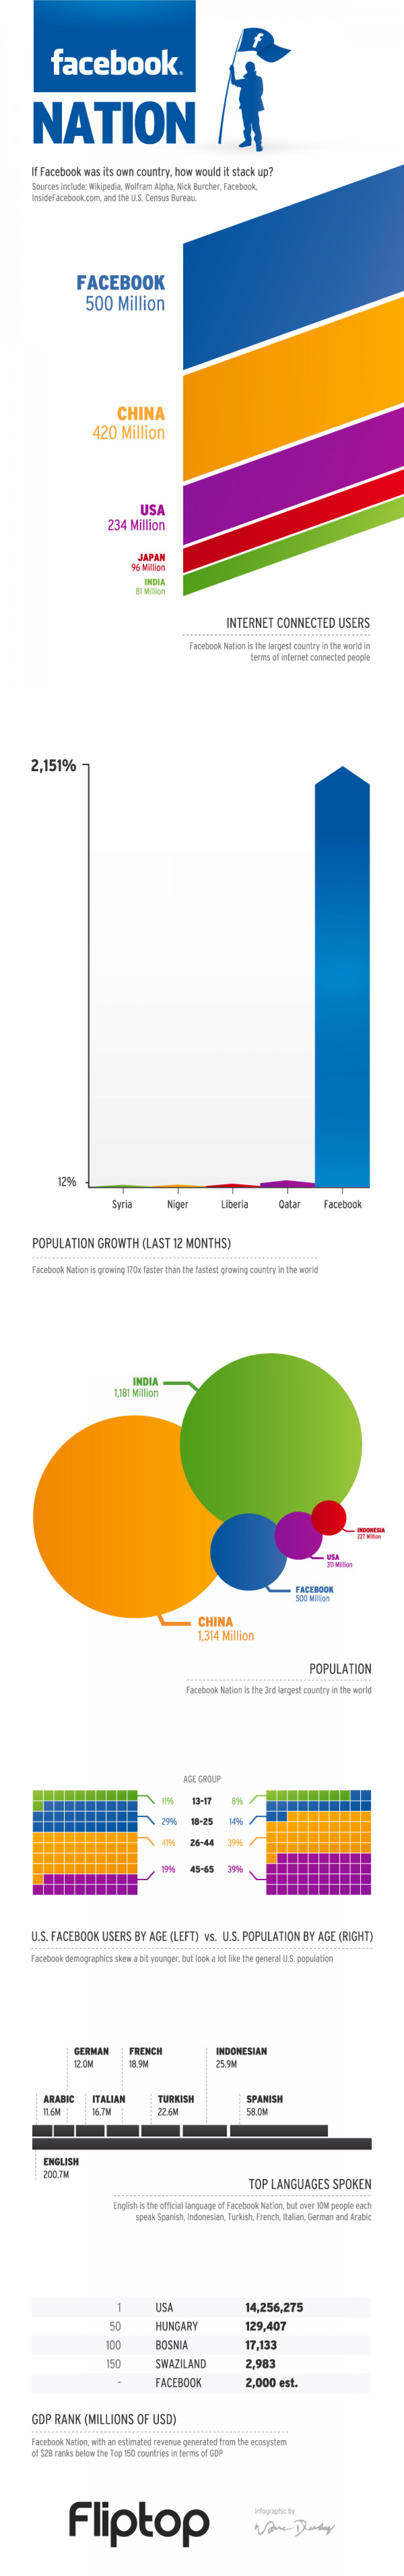 What If Facebook Was Its Own Country? Infographic